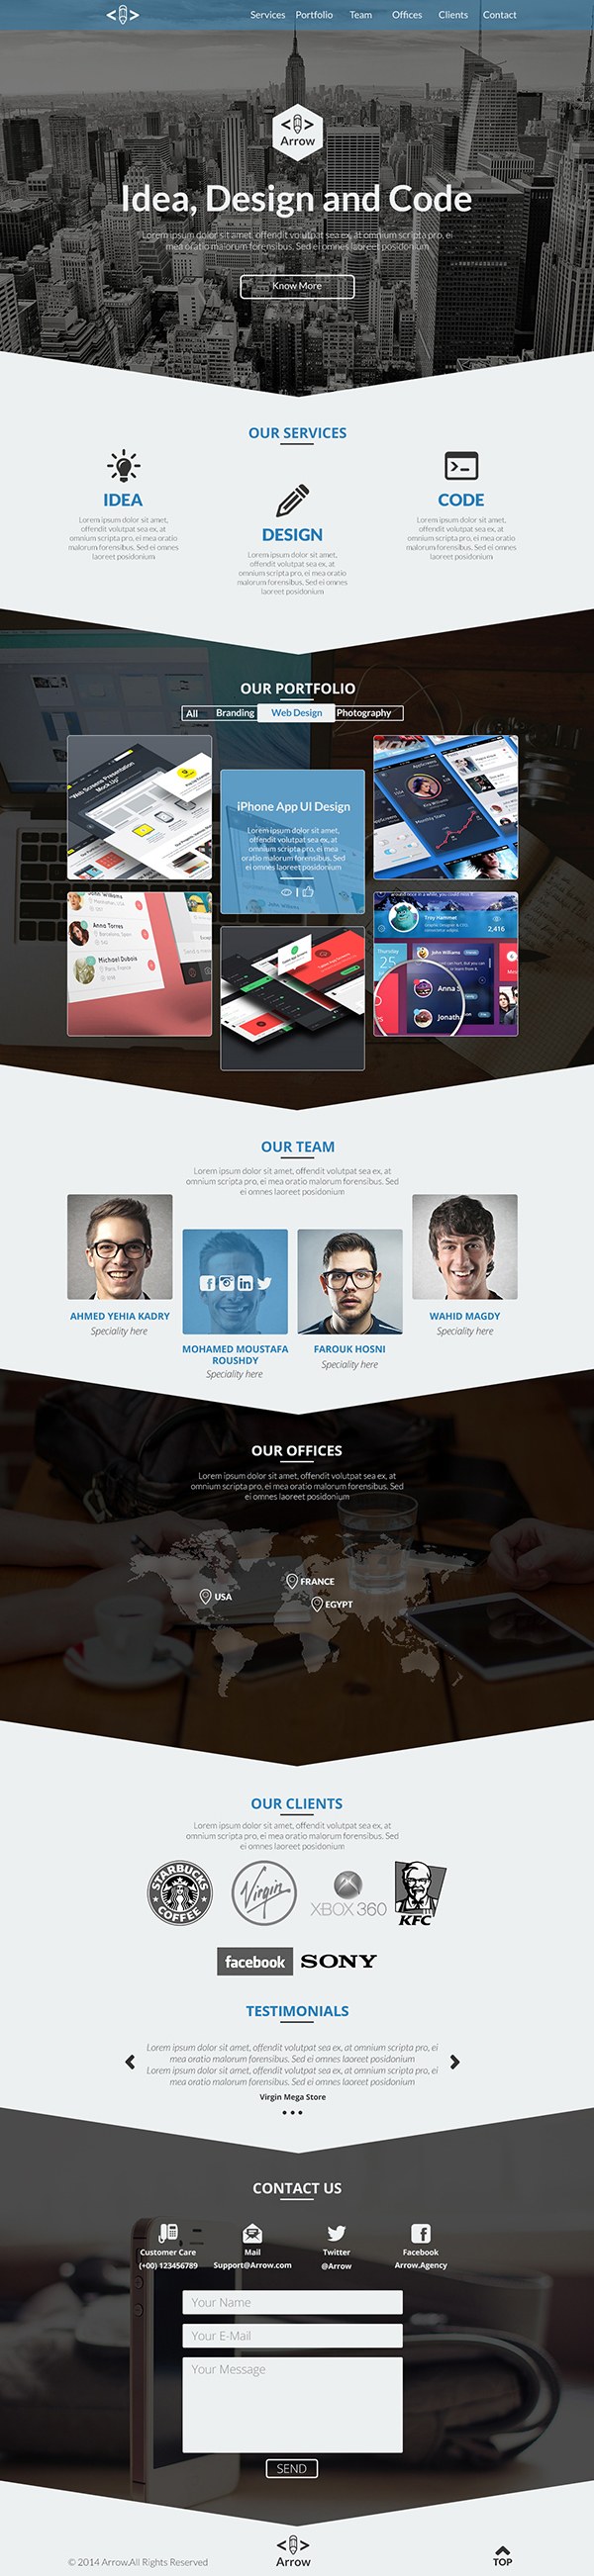 psd templates  20 one page free web templates